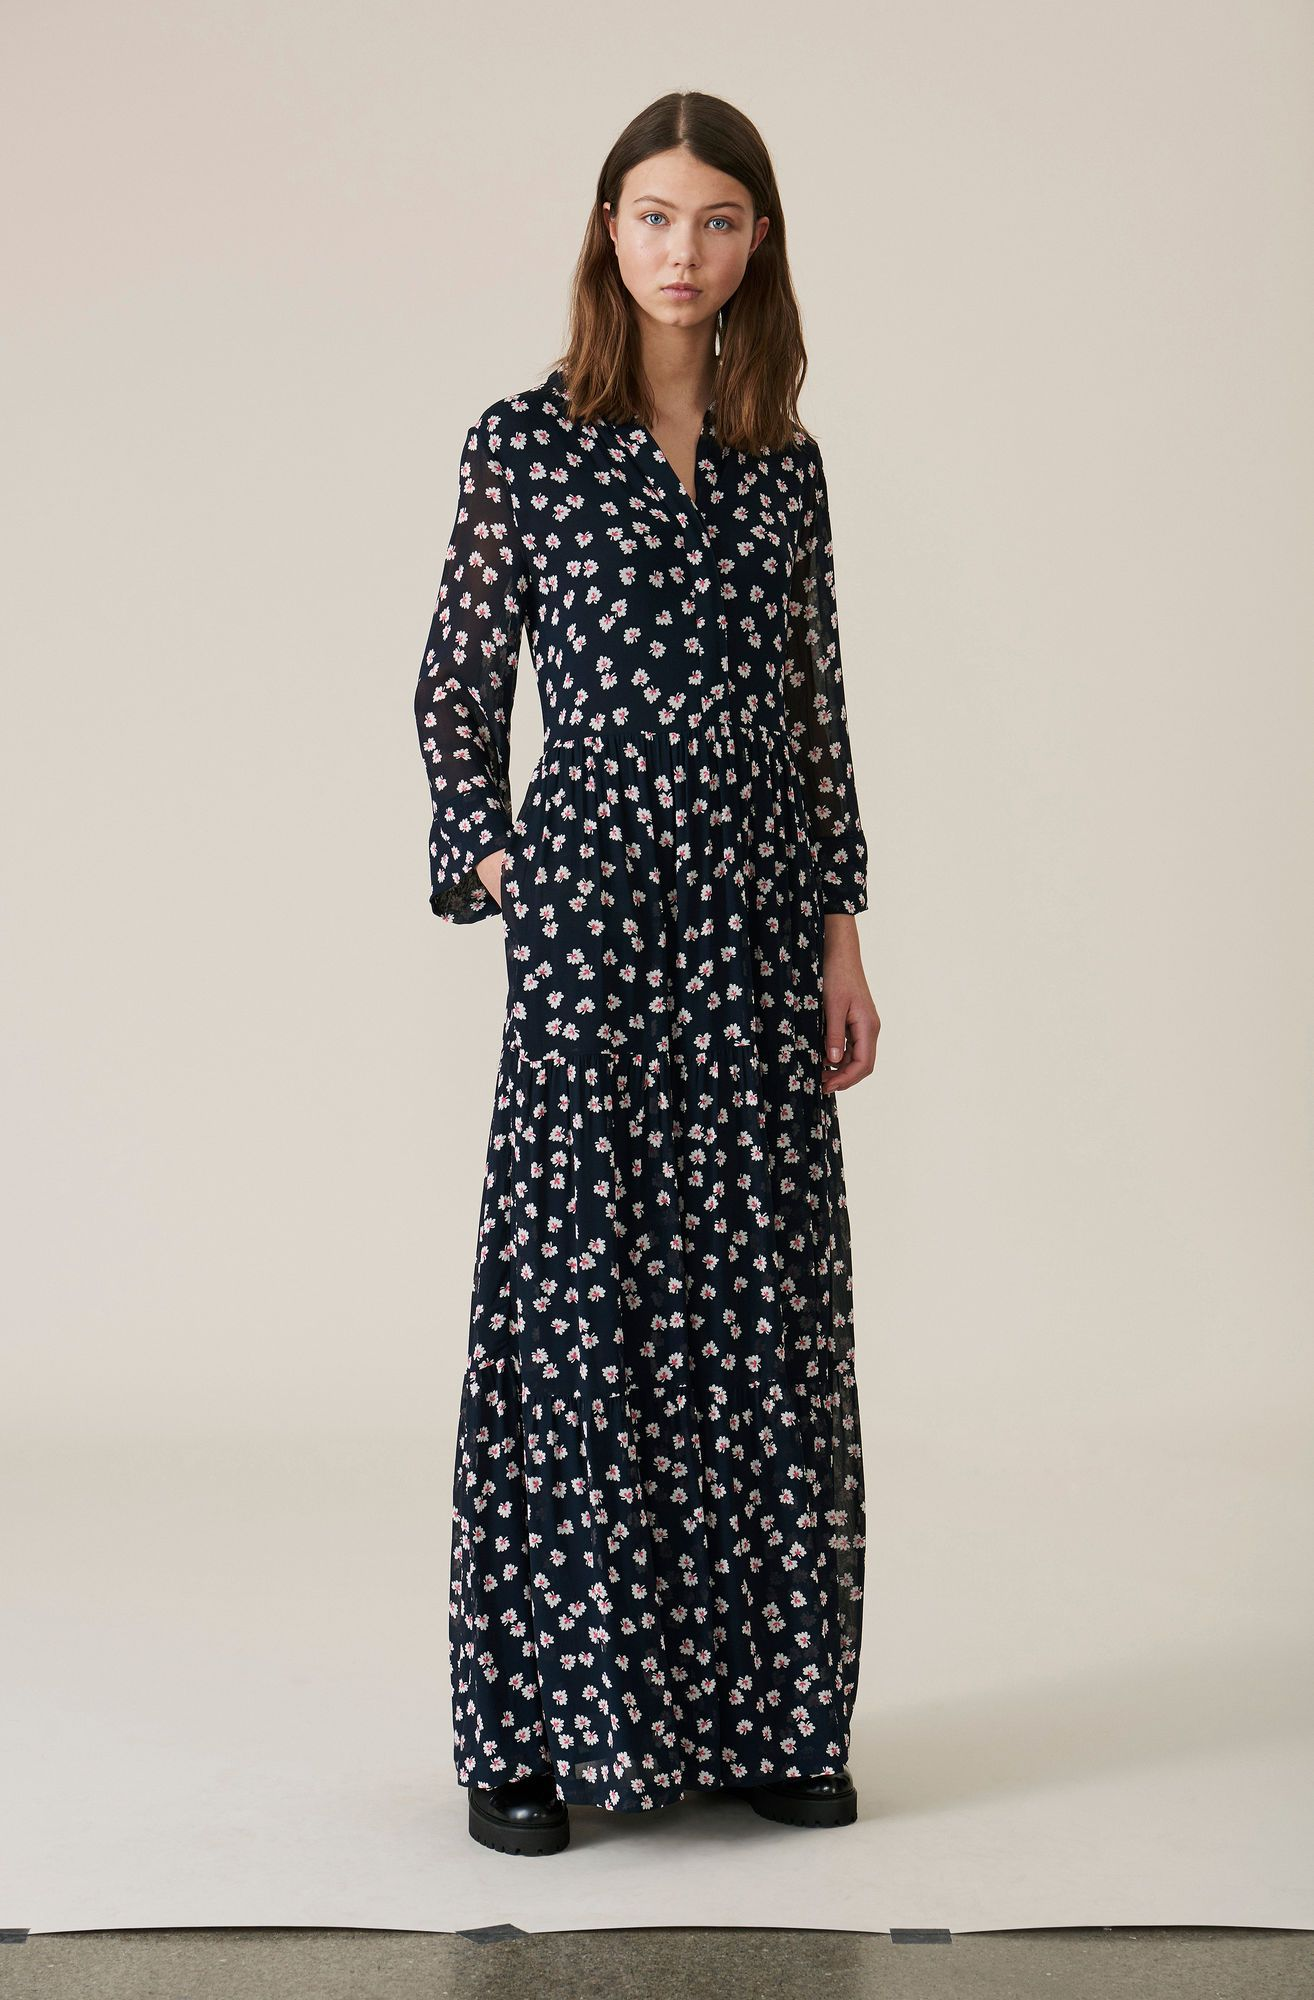 768b08d6 Rometty Georgette Maxi Dress, Total Eclipse | outfit for school in ...